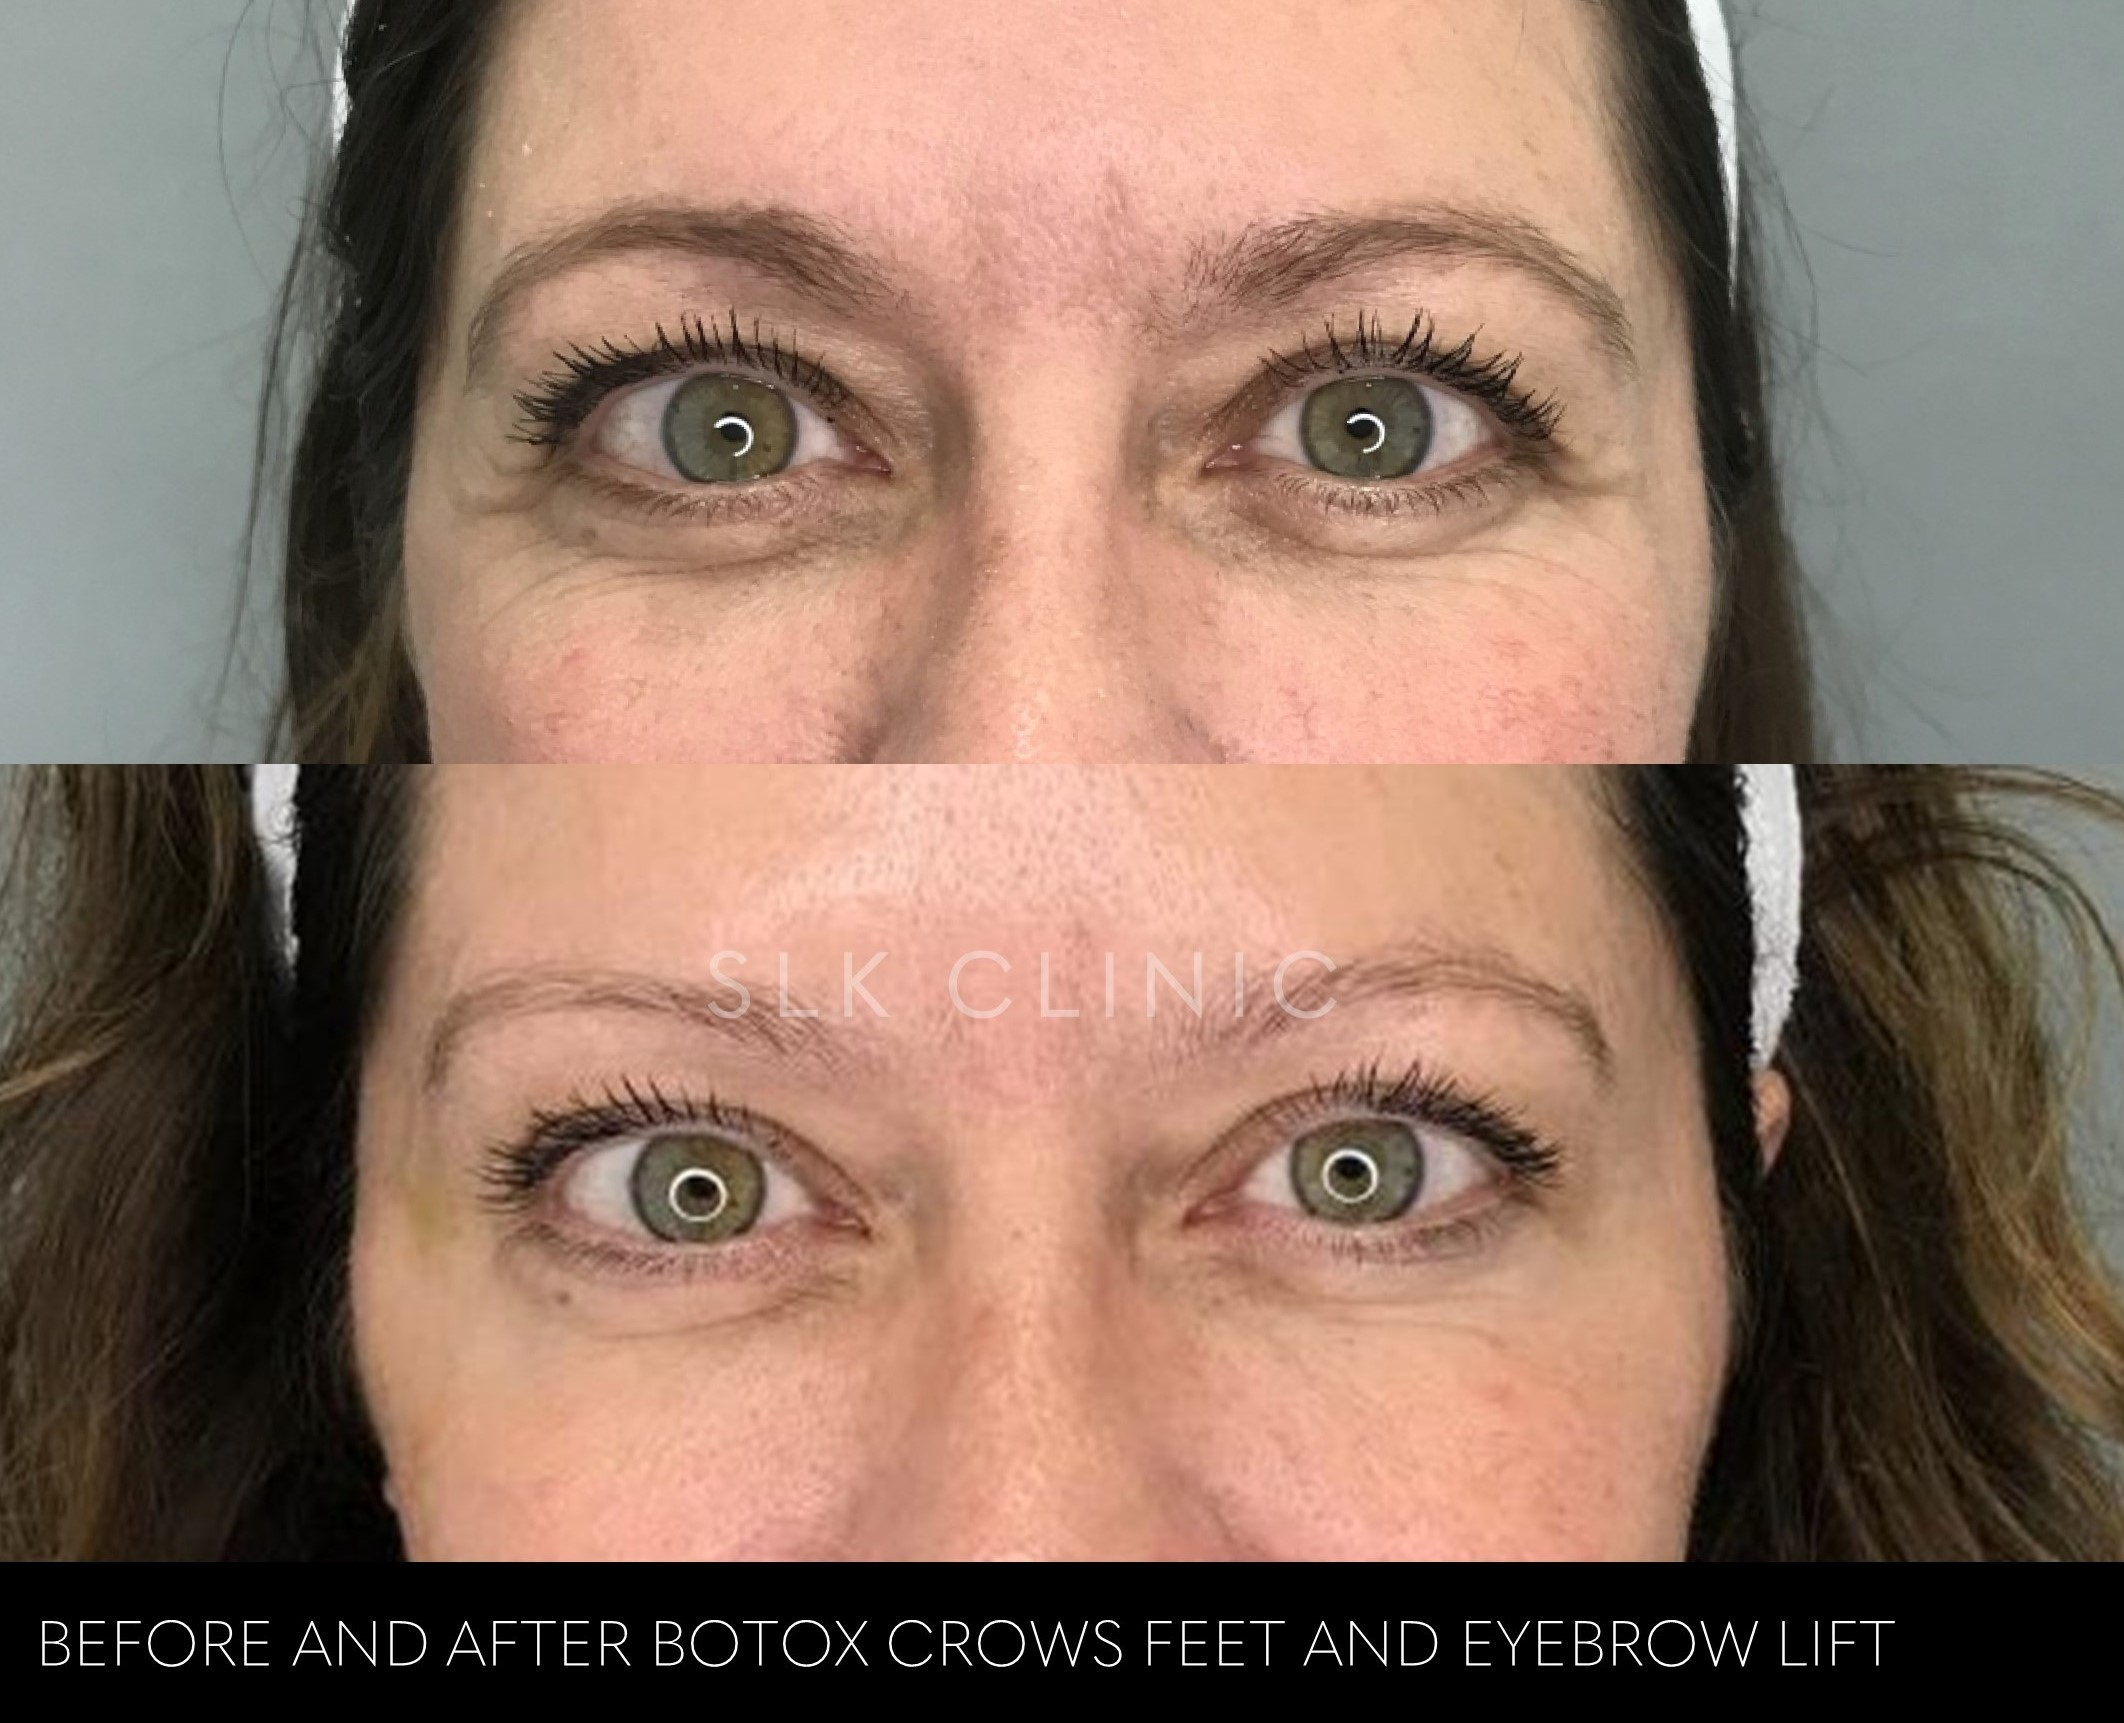 before and after botox for crows feet and eyebrow lift